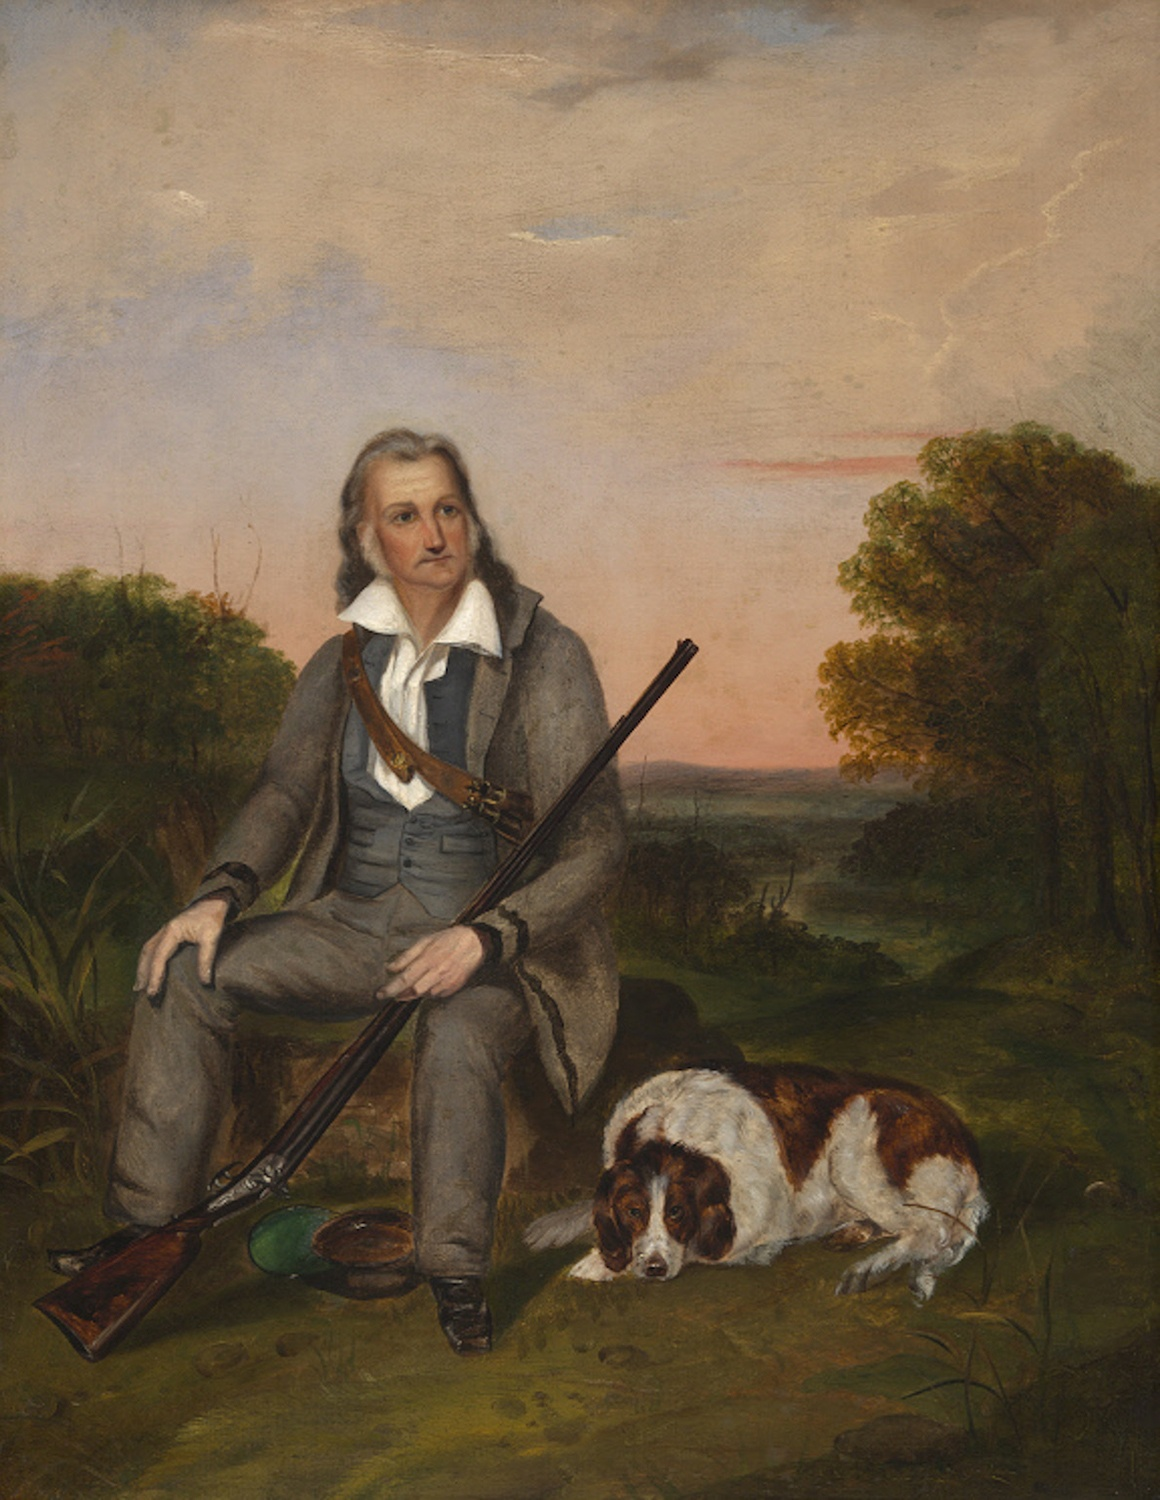 John James Audubon, unidentified artist, oil on canvas, c. 1841. From the National Portrait Gallery, Smithsonian Institution.